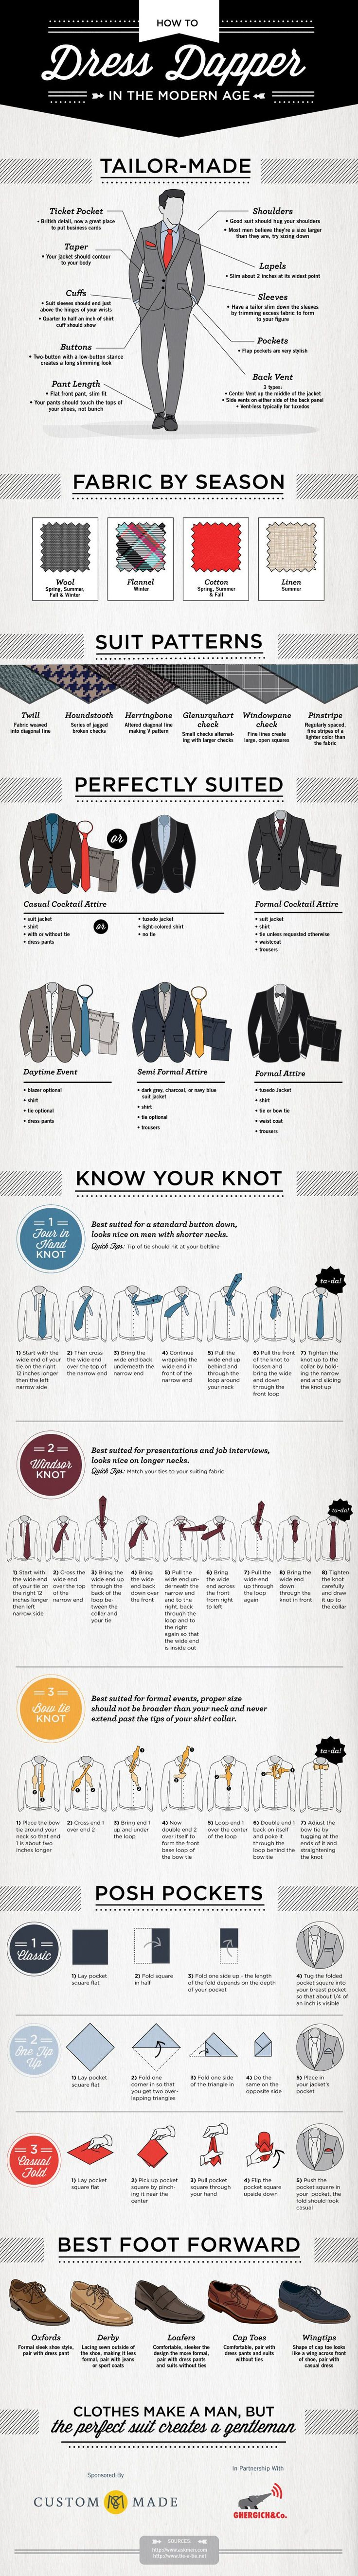 Men's Style: How to dress dapper in the modern age Infographic by CustomMade #infografía #HowToDressFashionably